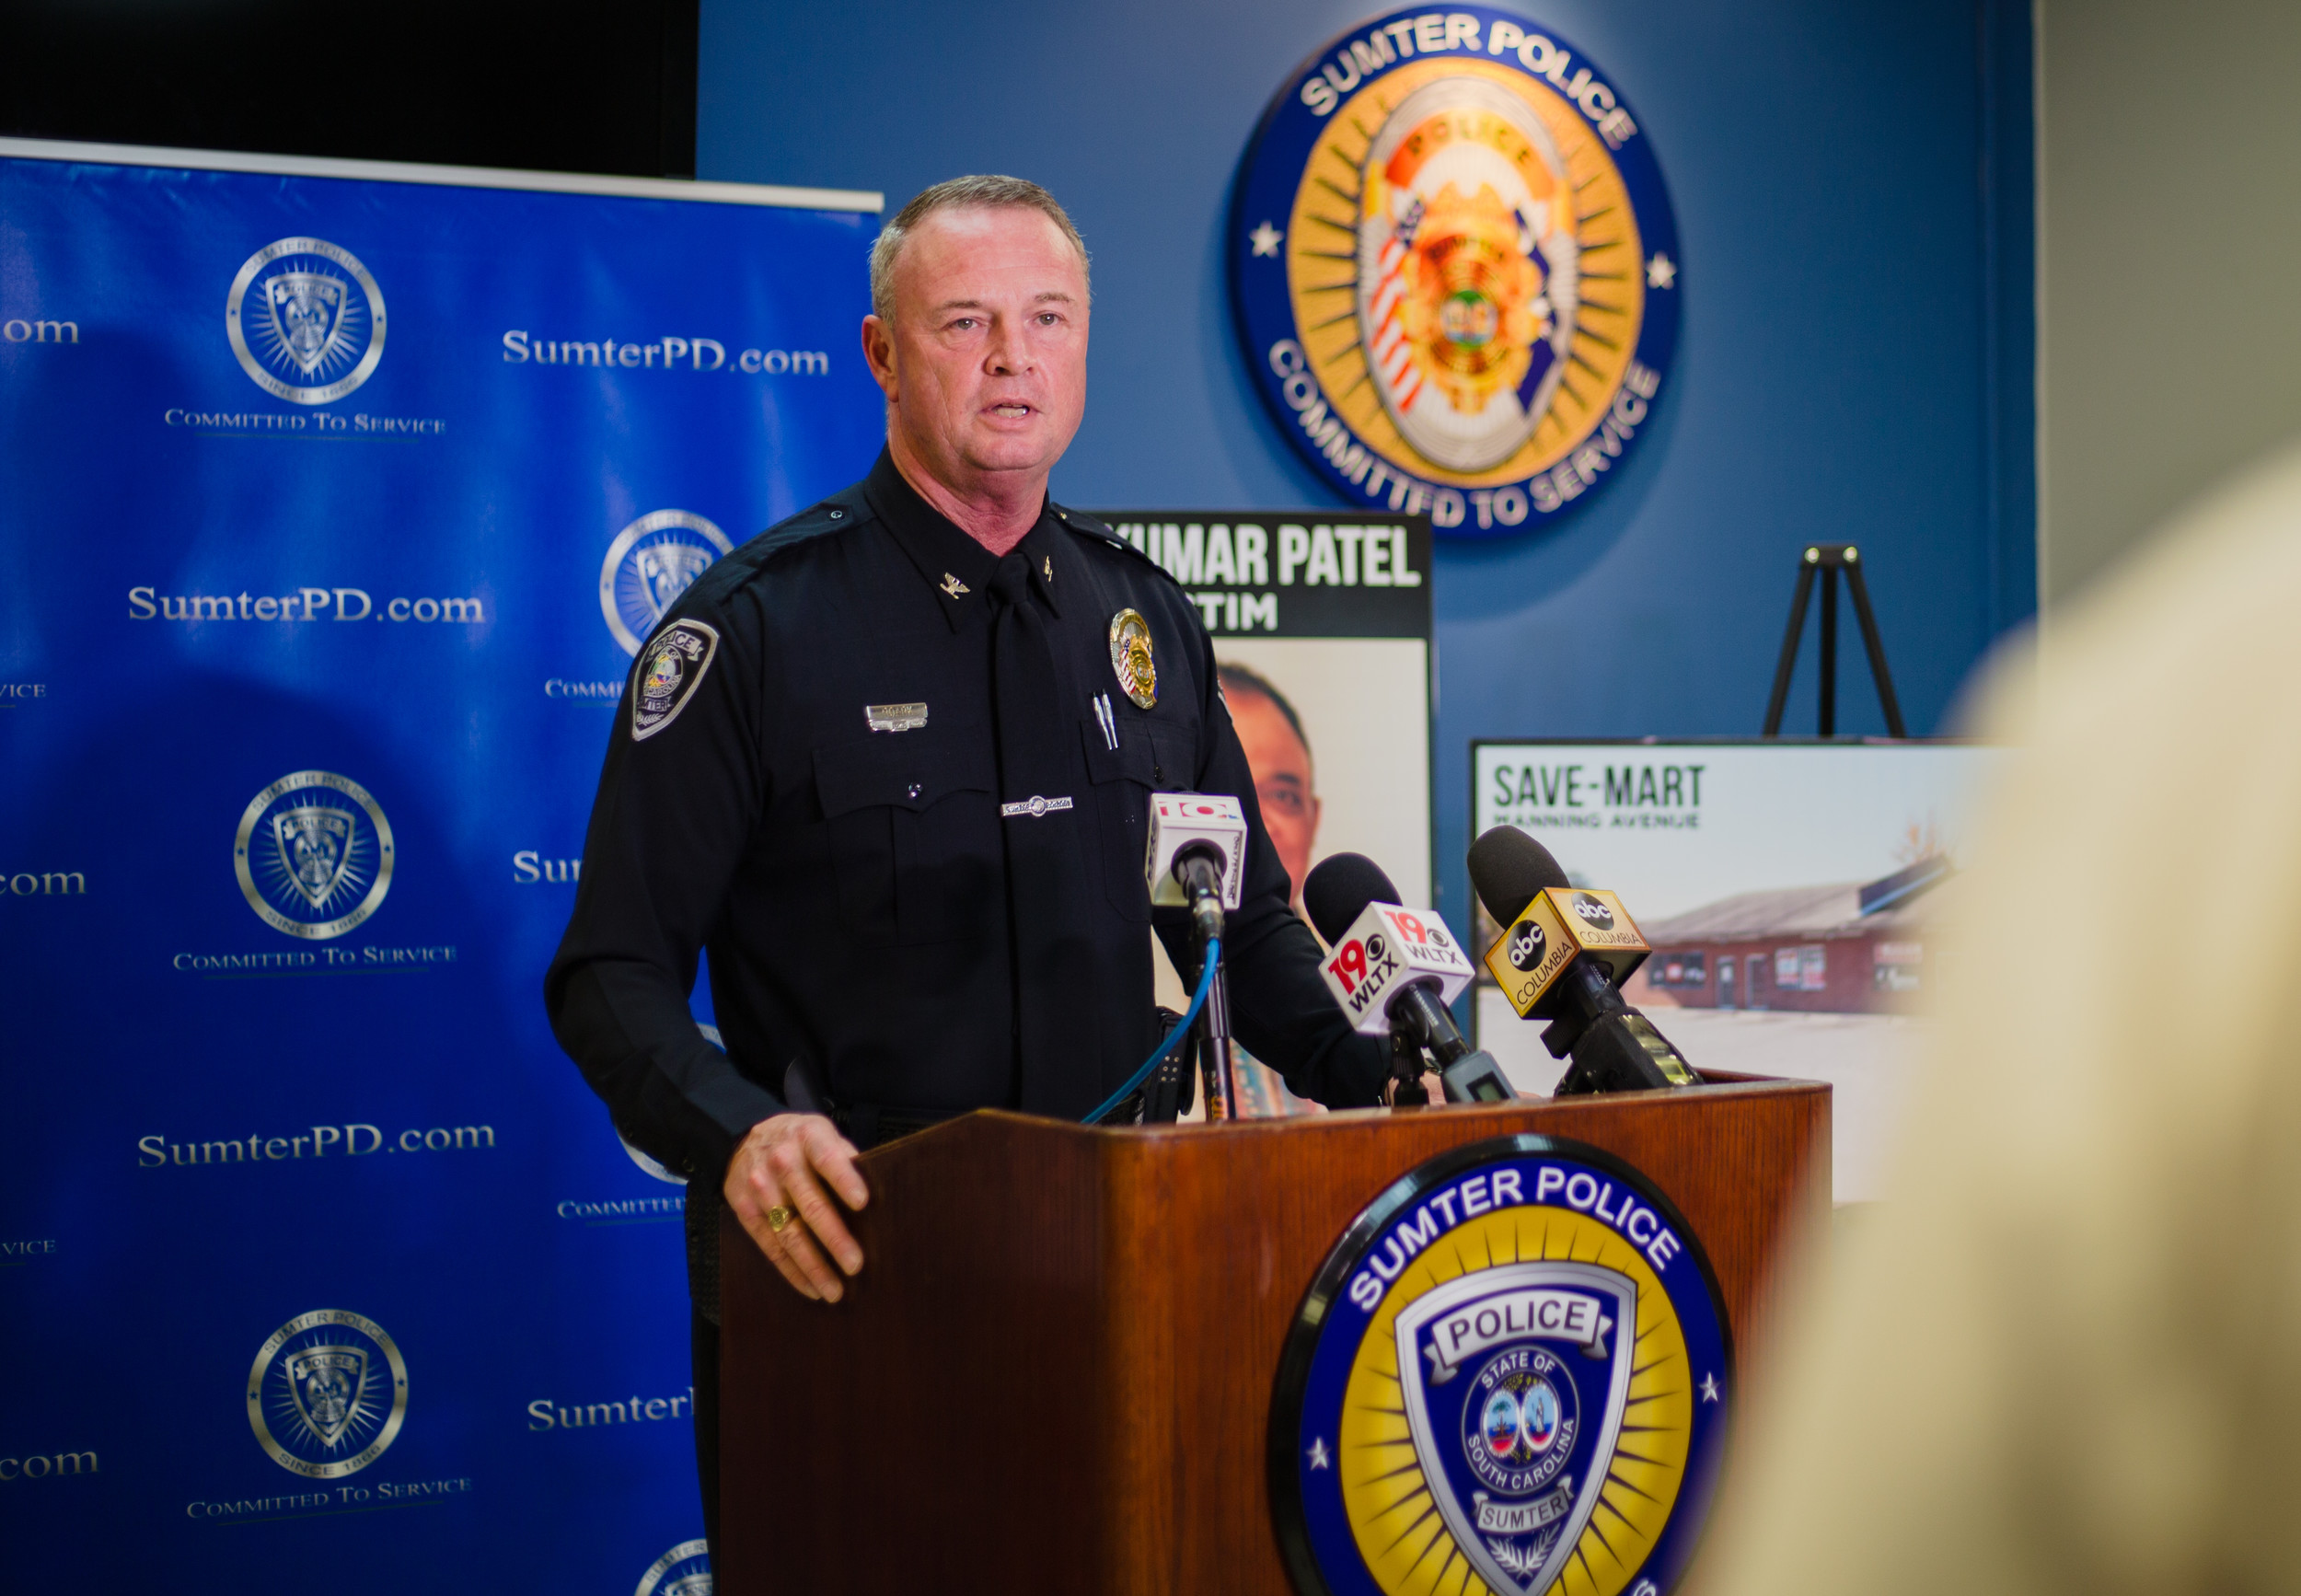 Sumter Police Chief Russell F. Roark III updates media on Thursday of the case involving the murder and attempted armed robbery that took the life of Vijaykumar Patel on Nov. 24.